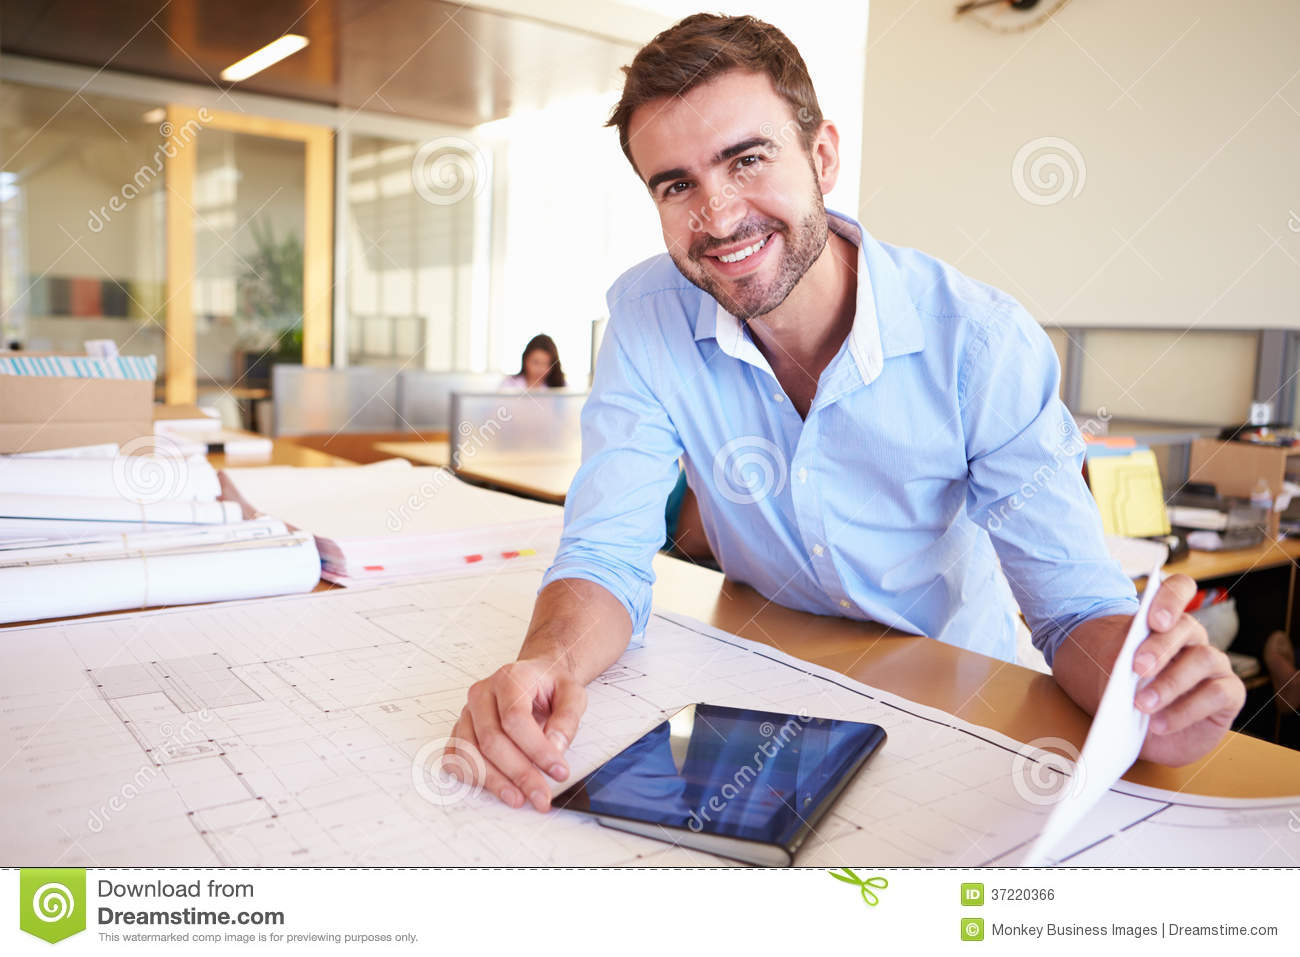 Male Architect With Digital Tablet Studying Plans In